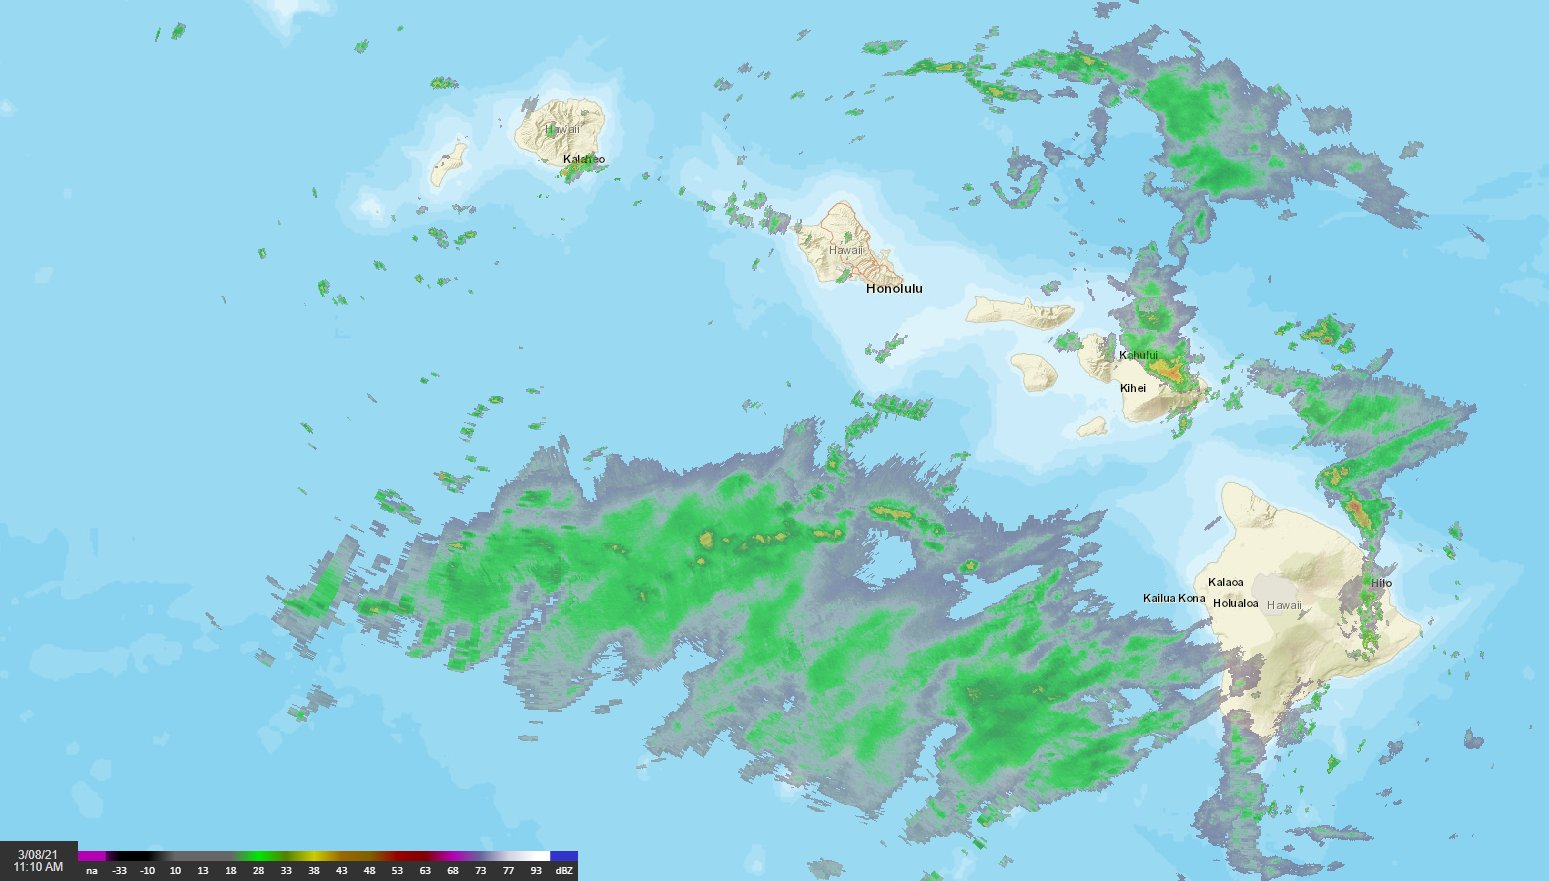 The National Weather Service issued a flash flood watch for all Hawaiian Islands on March 8, 2021 to last until the next night as an upper level disturbance interacts with tropical moisture moving in from the south and east. (The National Weather Service)